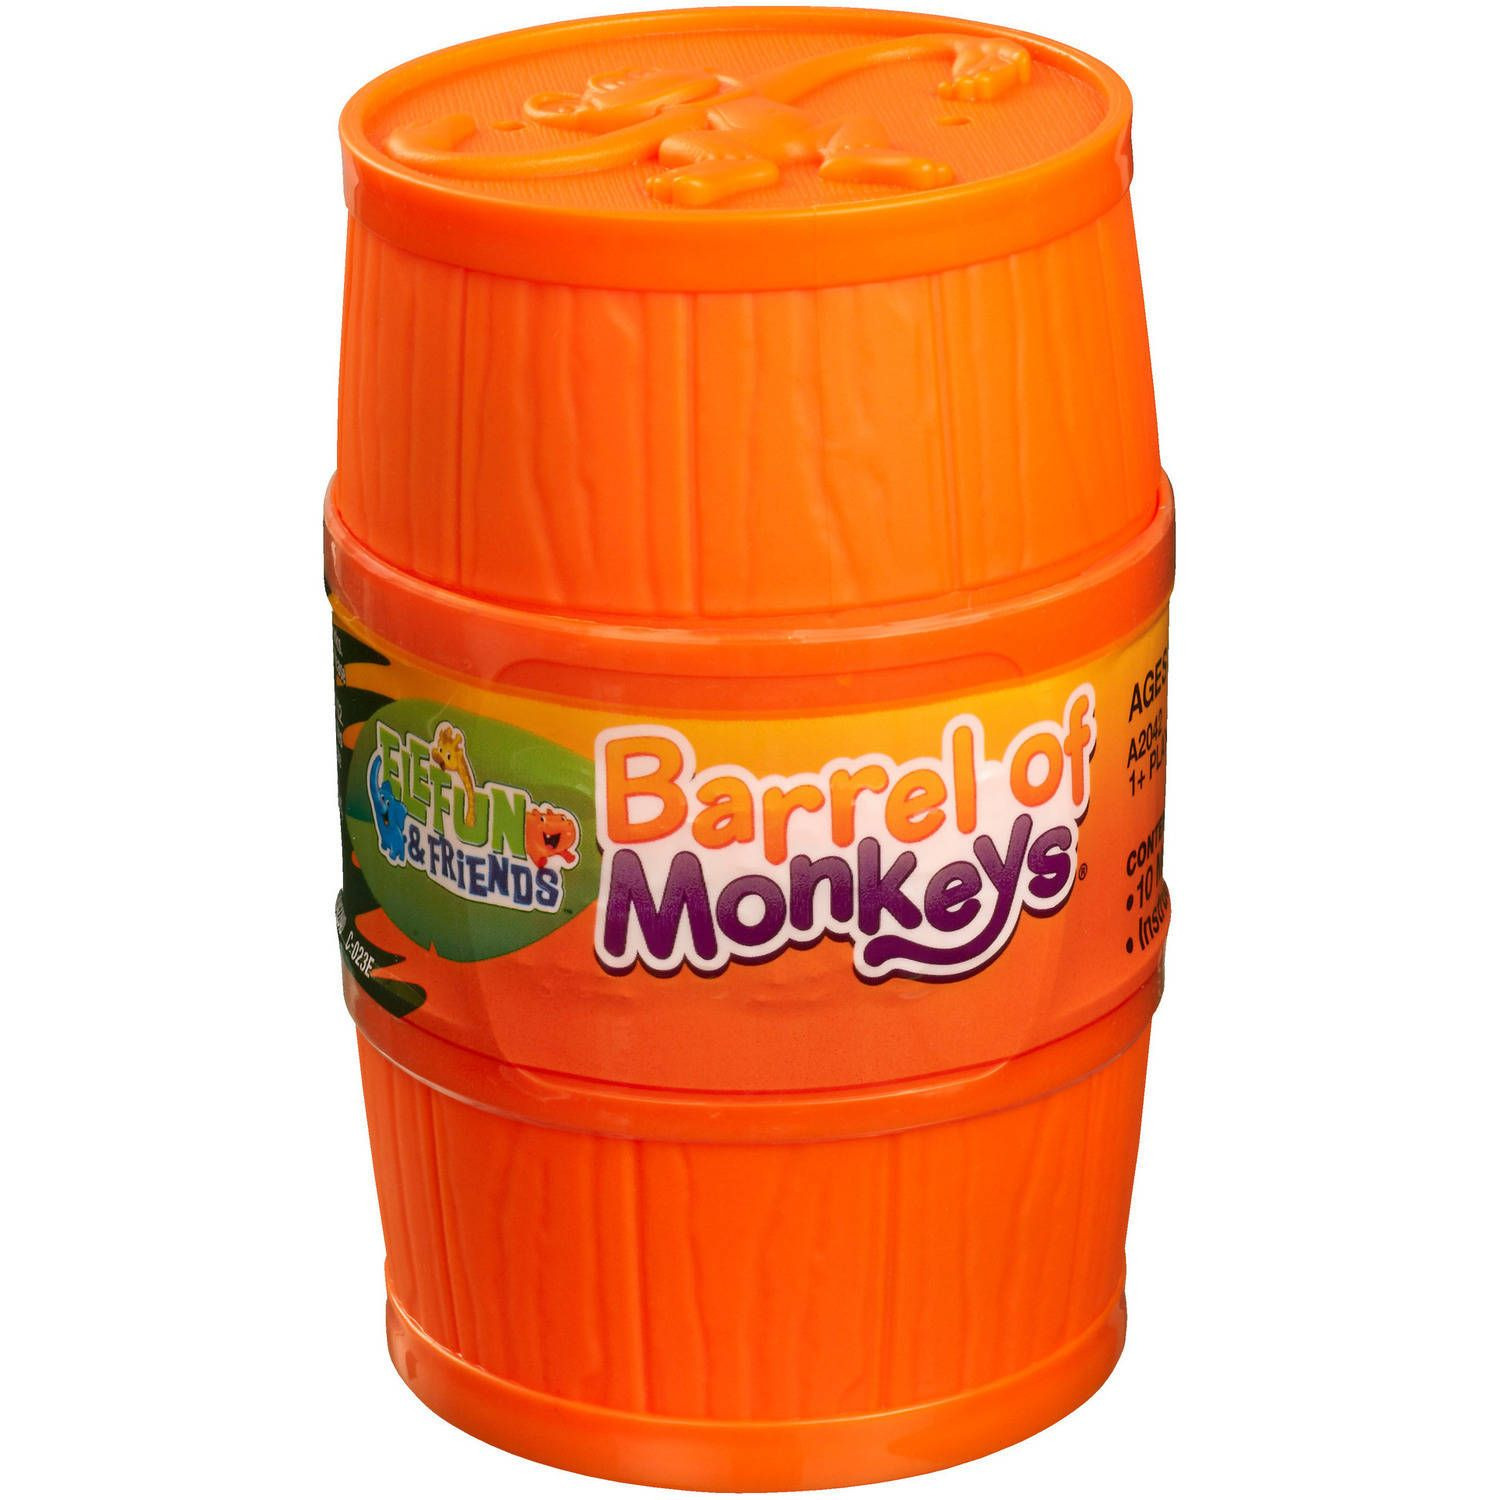 Elefun And Friends Barrel Of Monkeys Game Styles May Vary Walmart Com In 2020 Monkey Games Barrel Of Monkeys Games For Toddlers